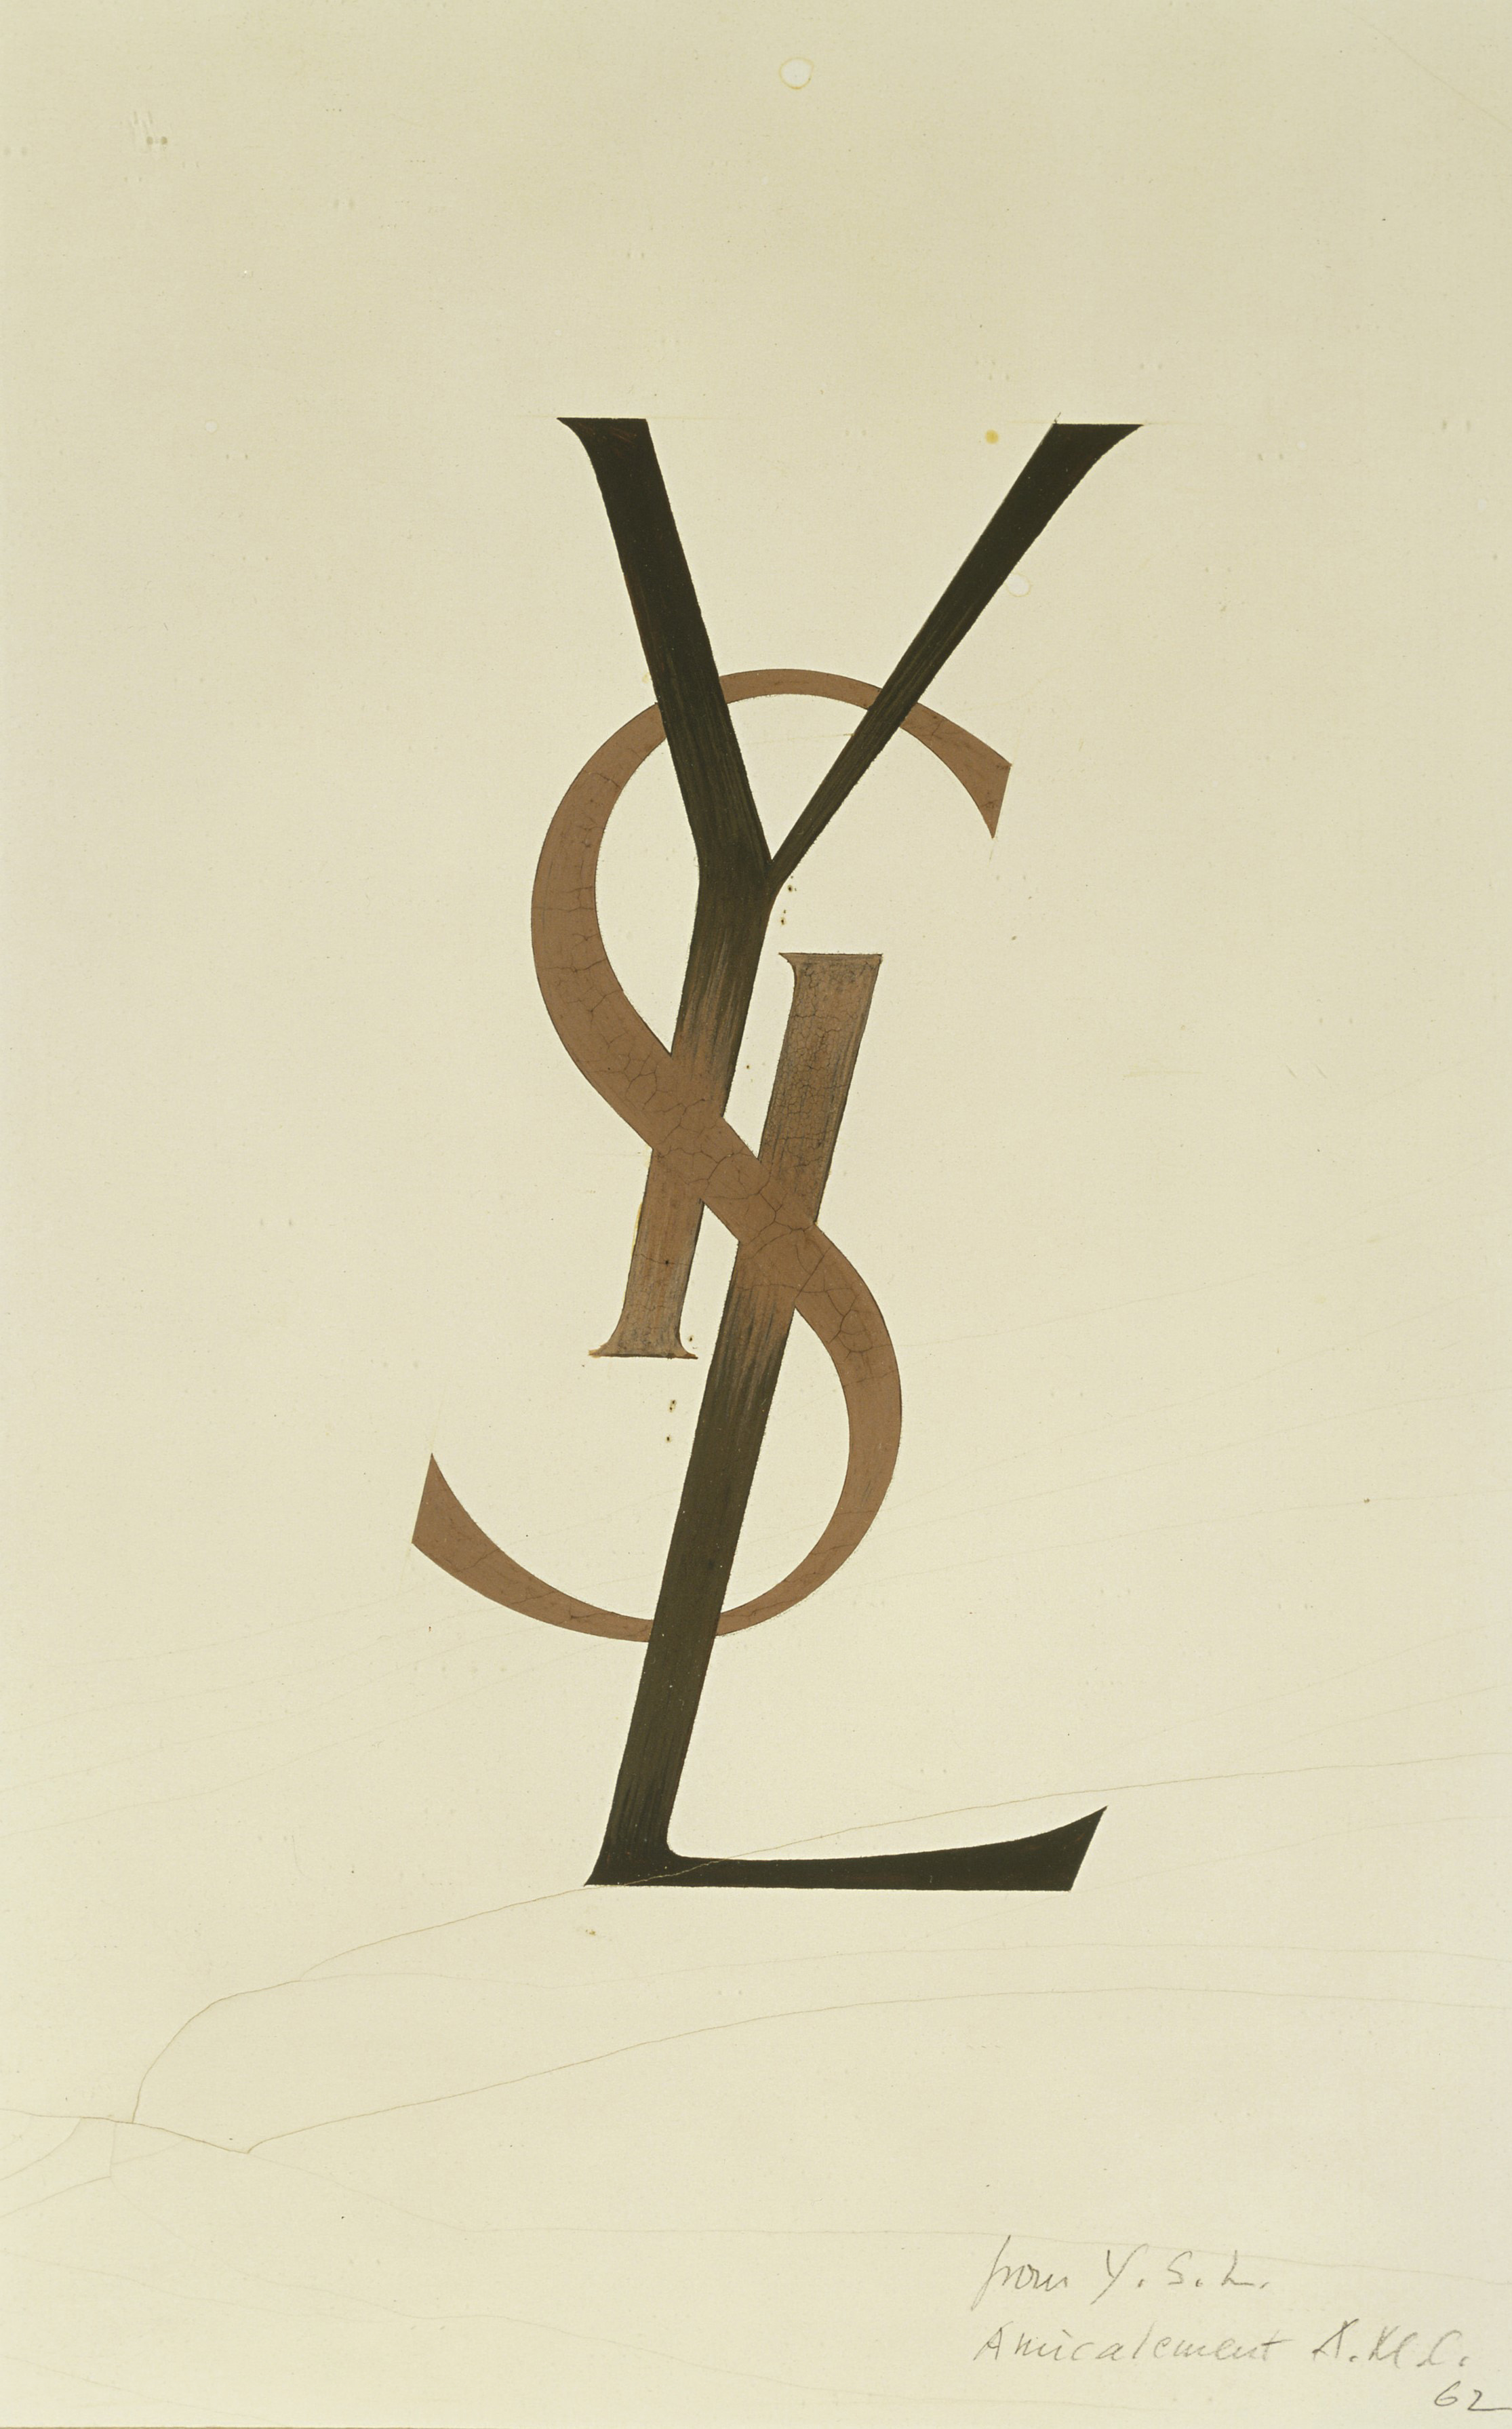 a logo designed by cassandre musée yves saint laurent paris